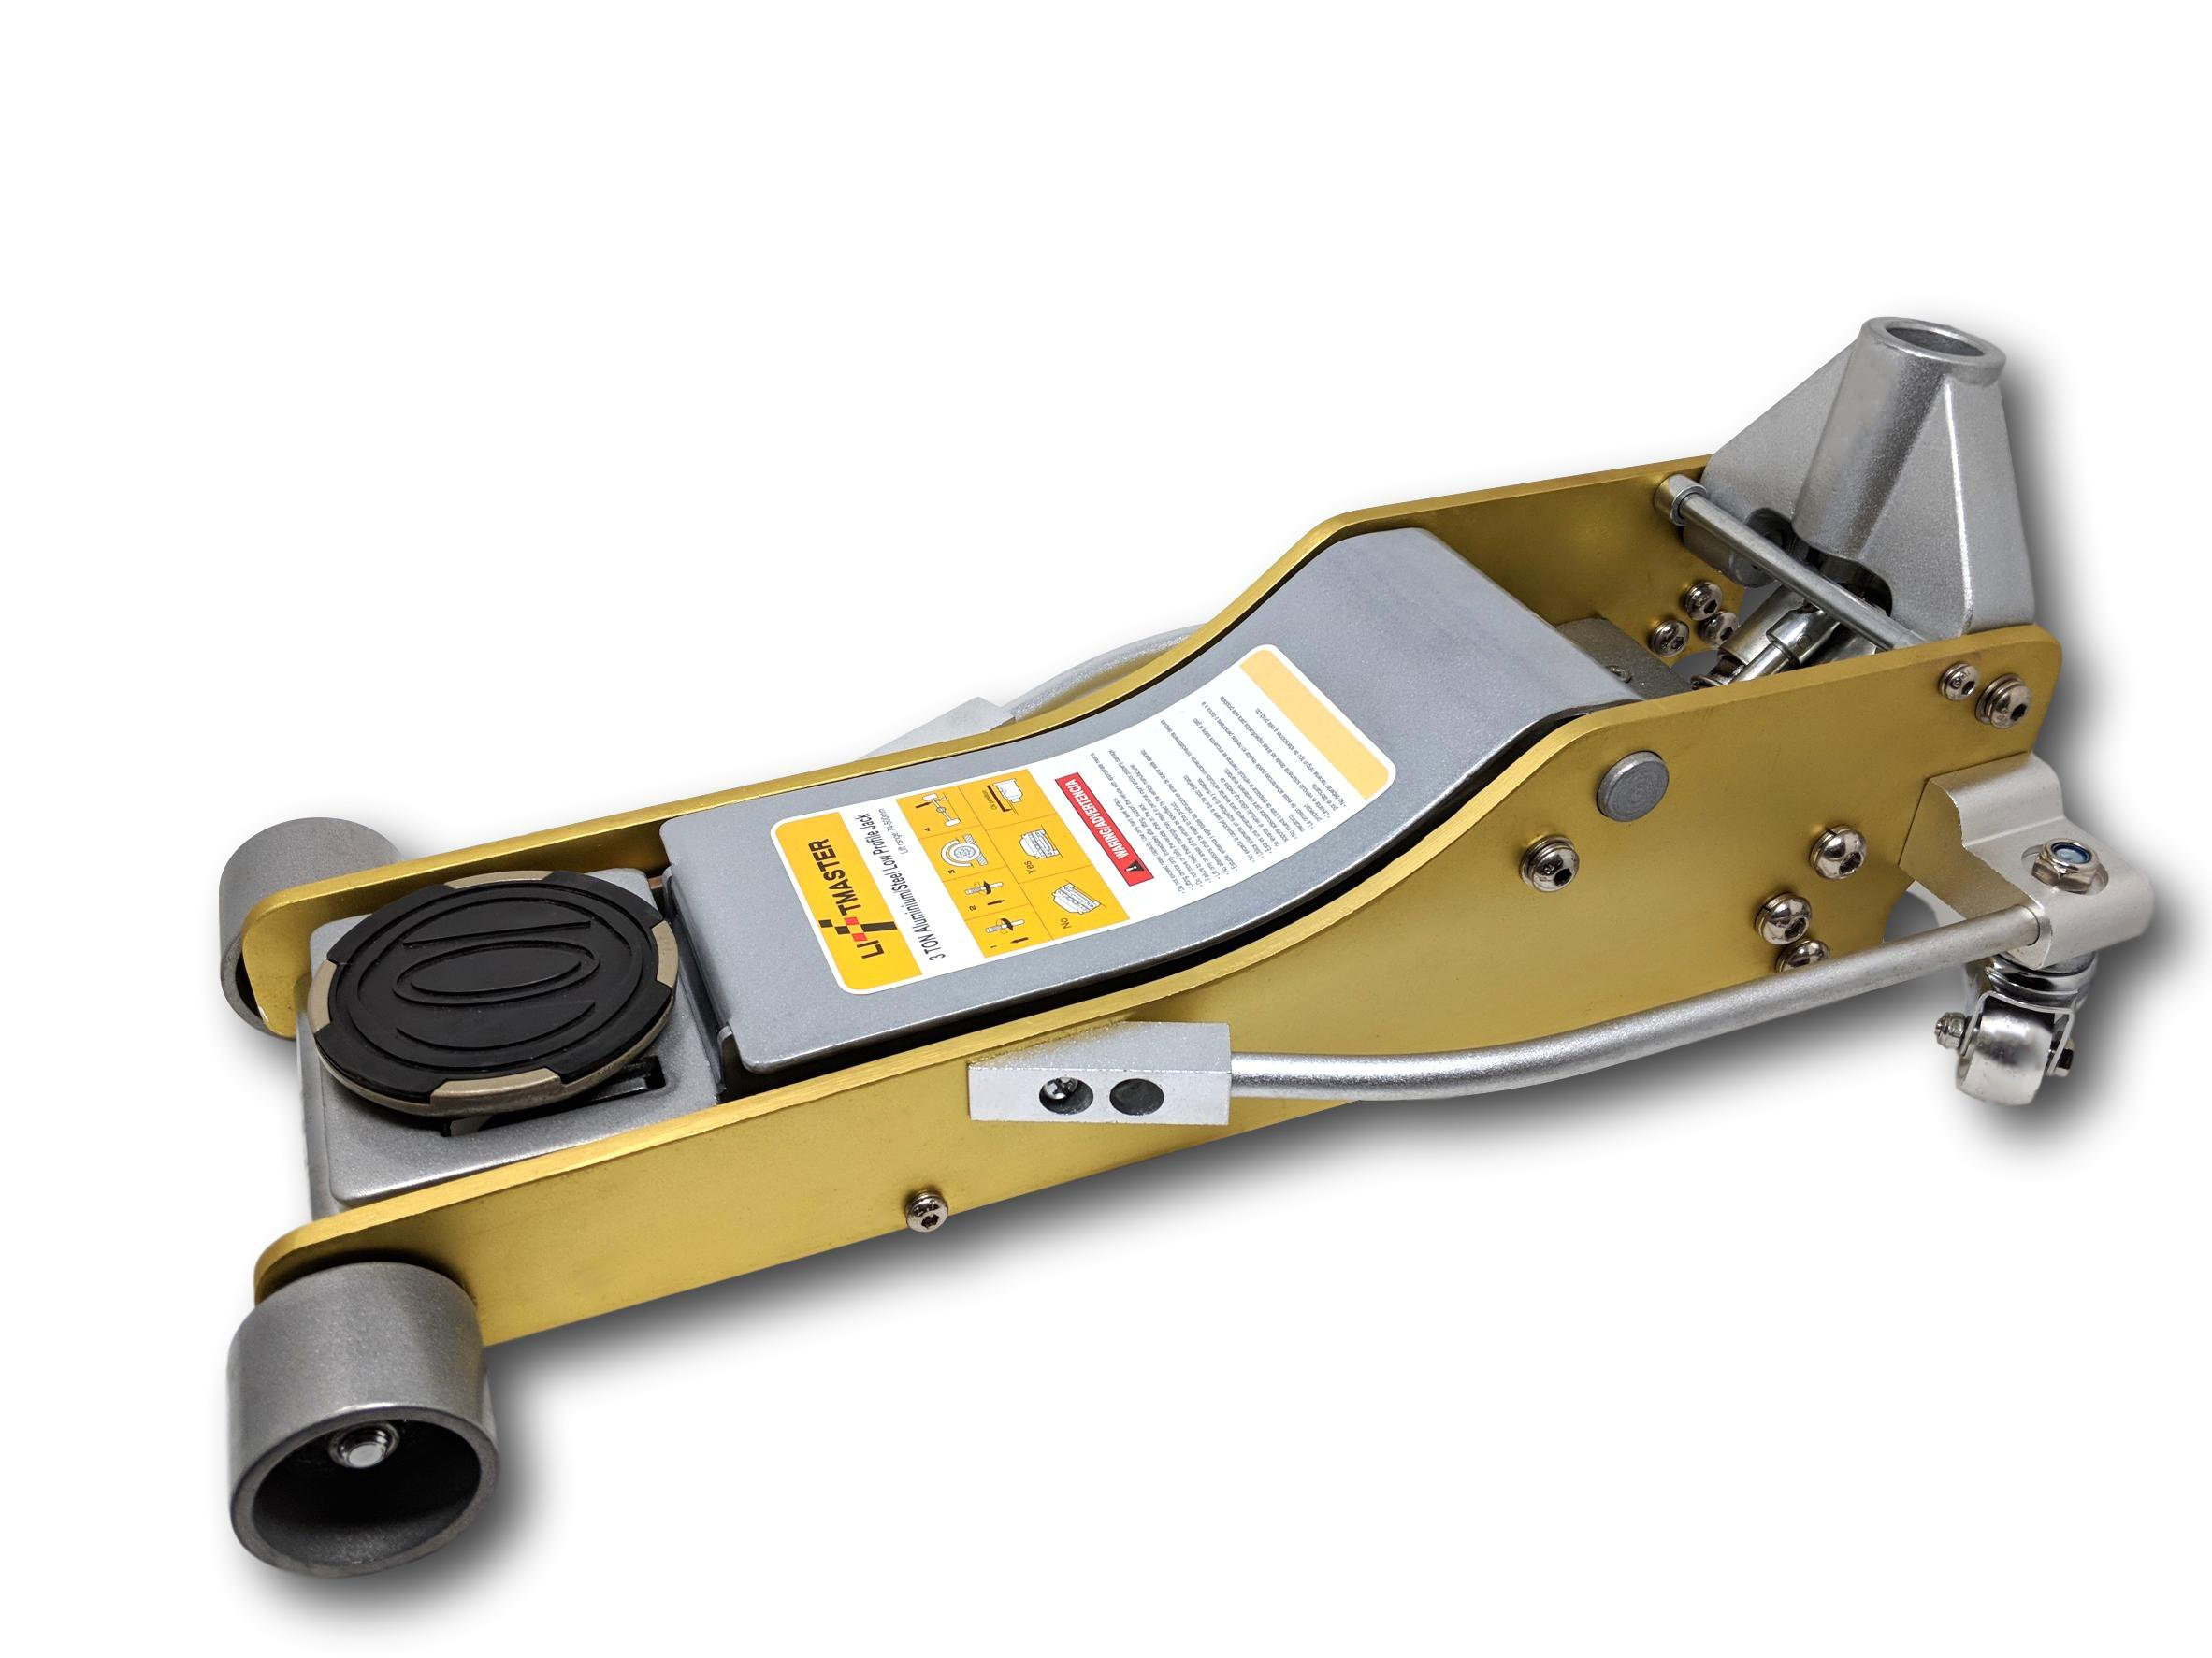 Liftmaster 3 Ton Aluminum and Steel Low Profile High Lift Floor Jack (Gold)... by LiftMaster